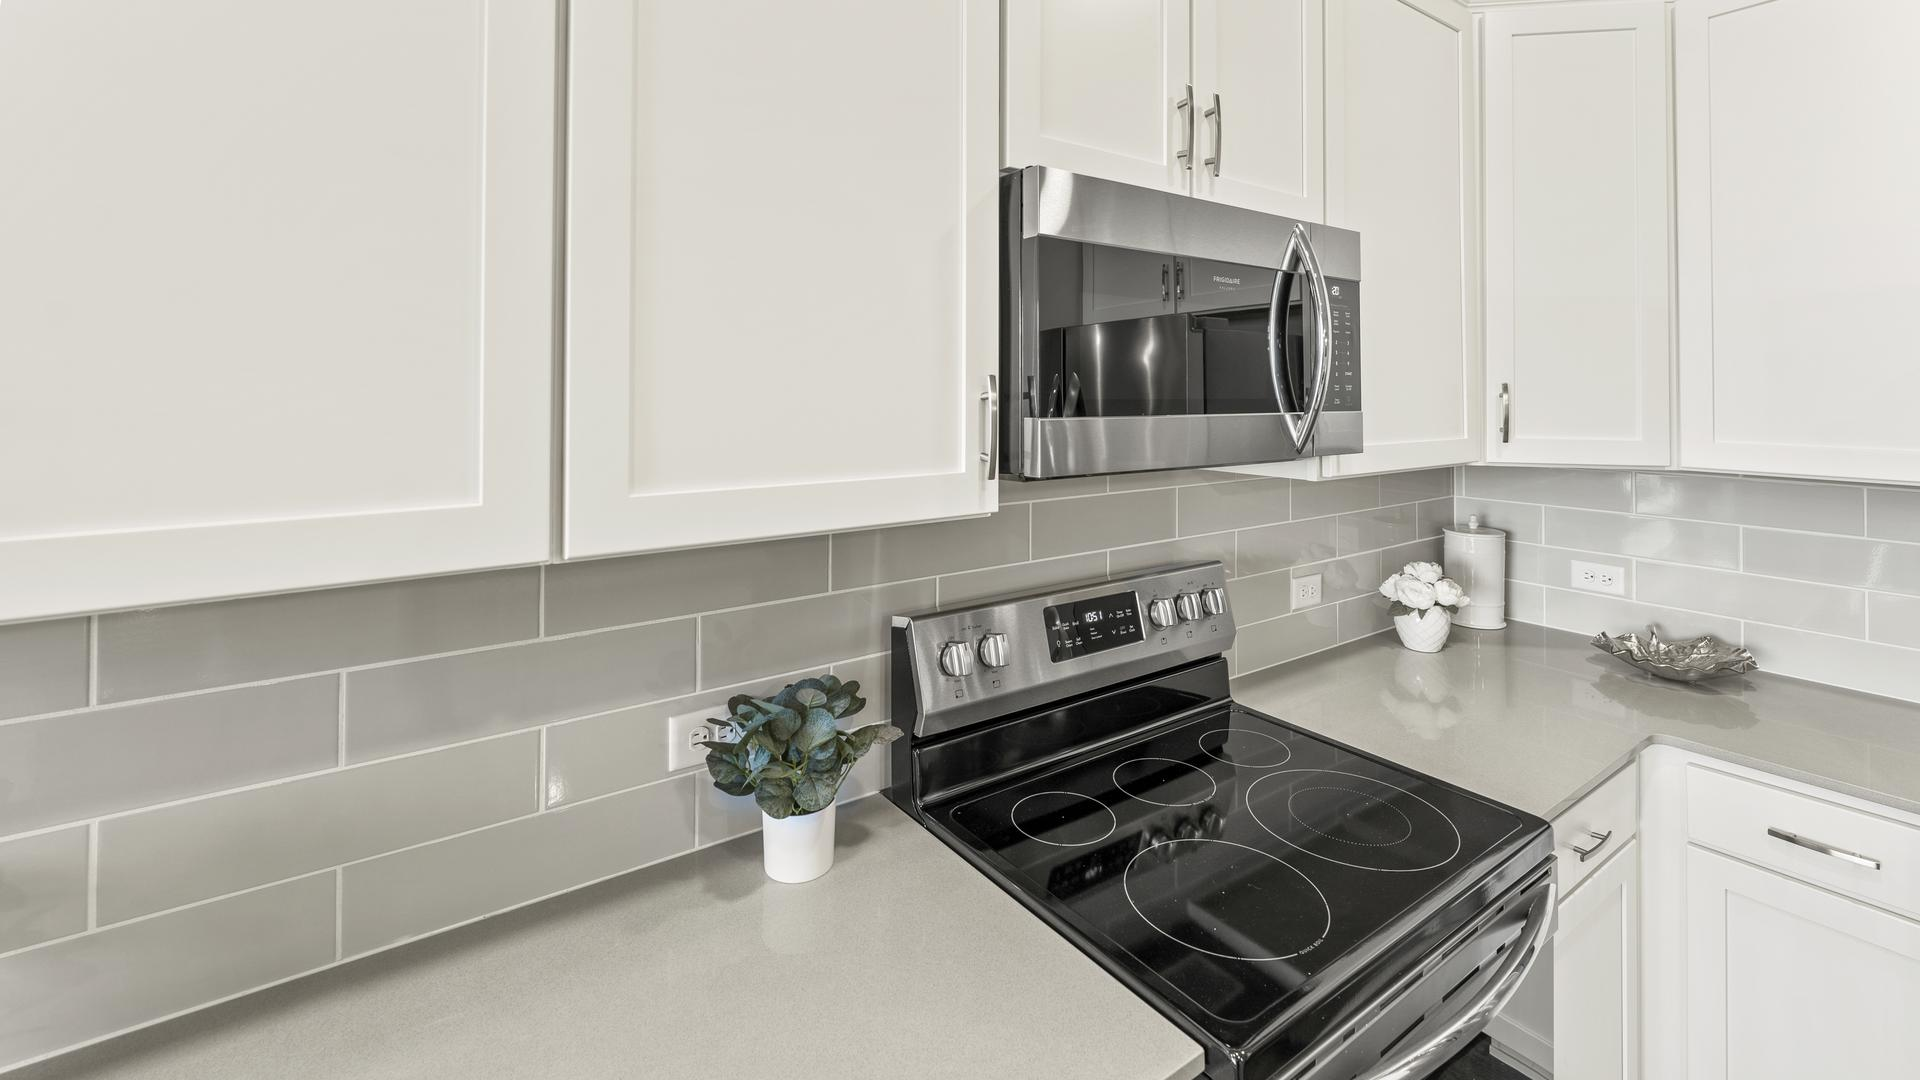 Kitchen - Not Actual Home - Finishes Will Vary . New Home in Loveland, CO